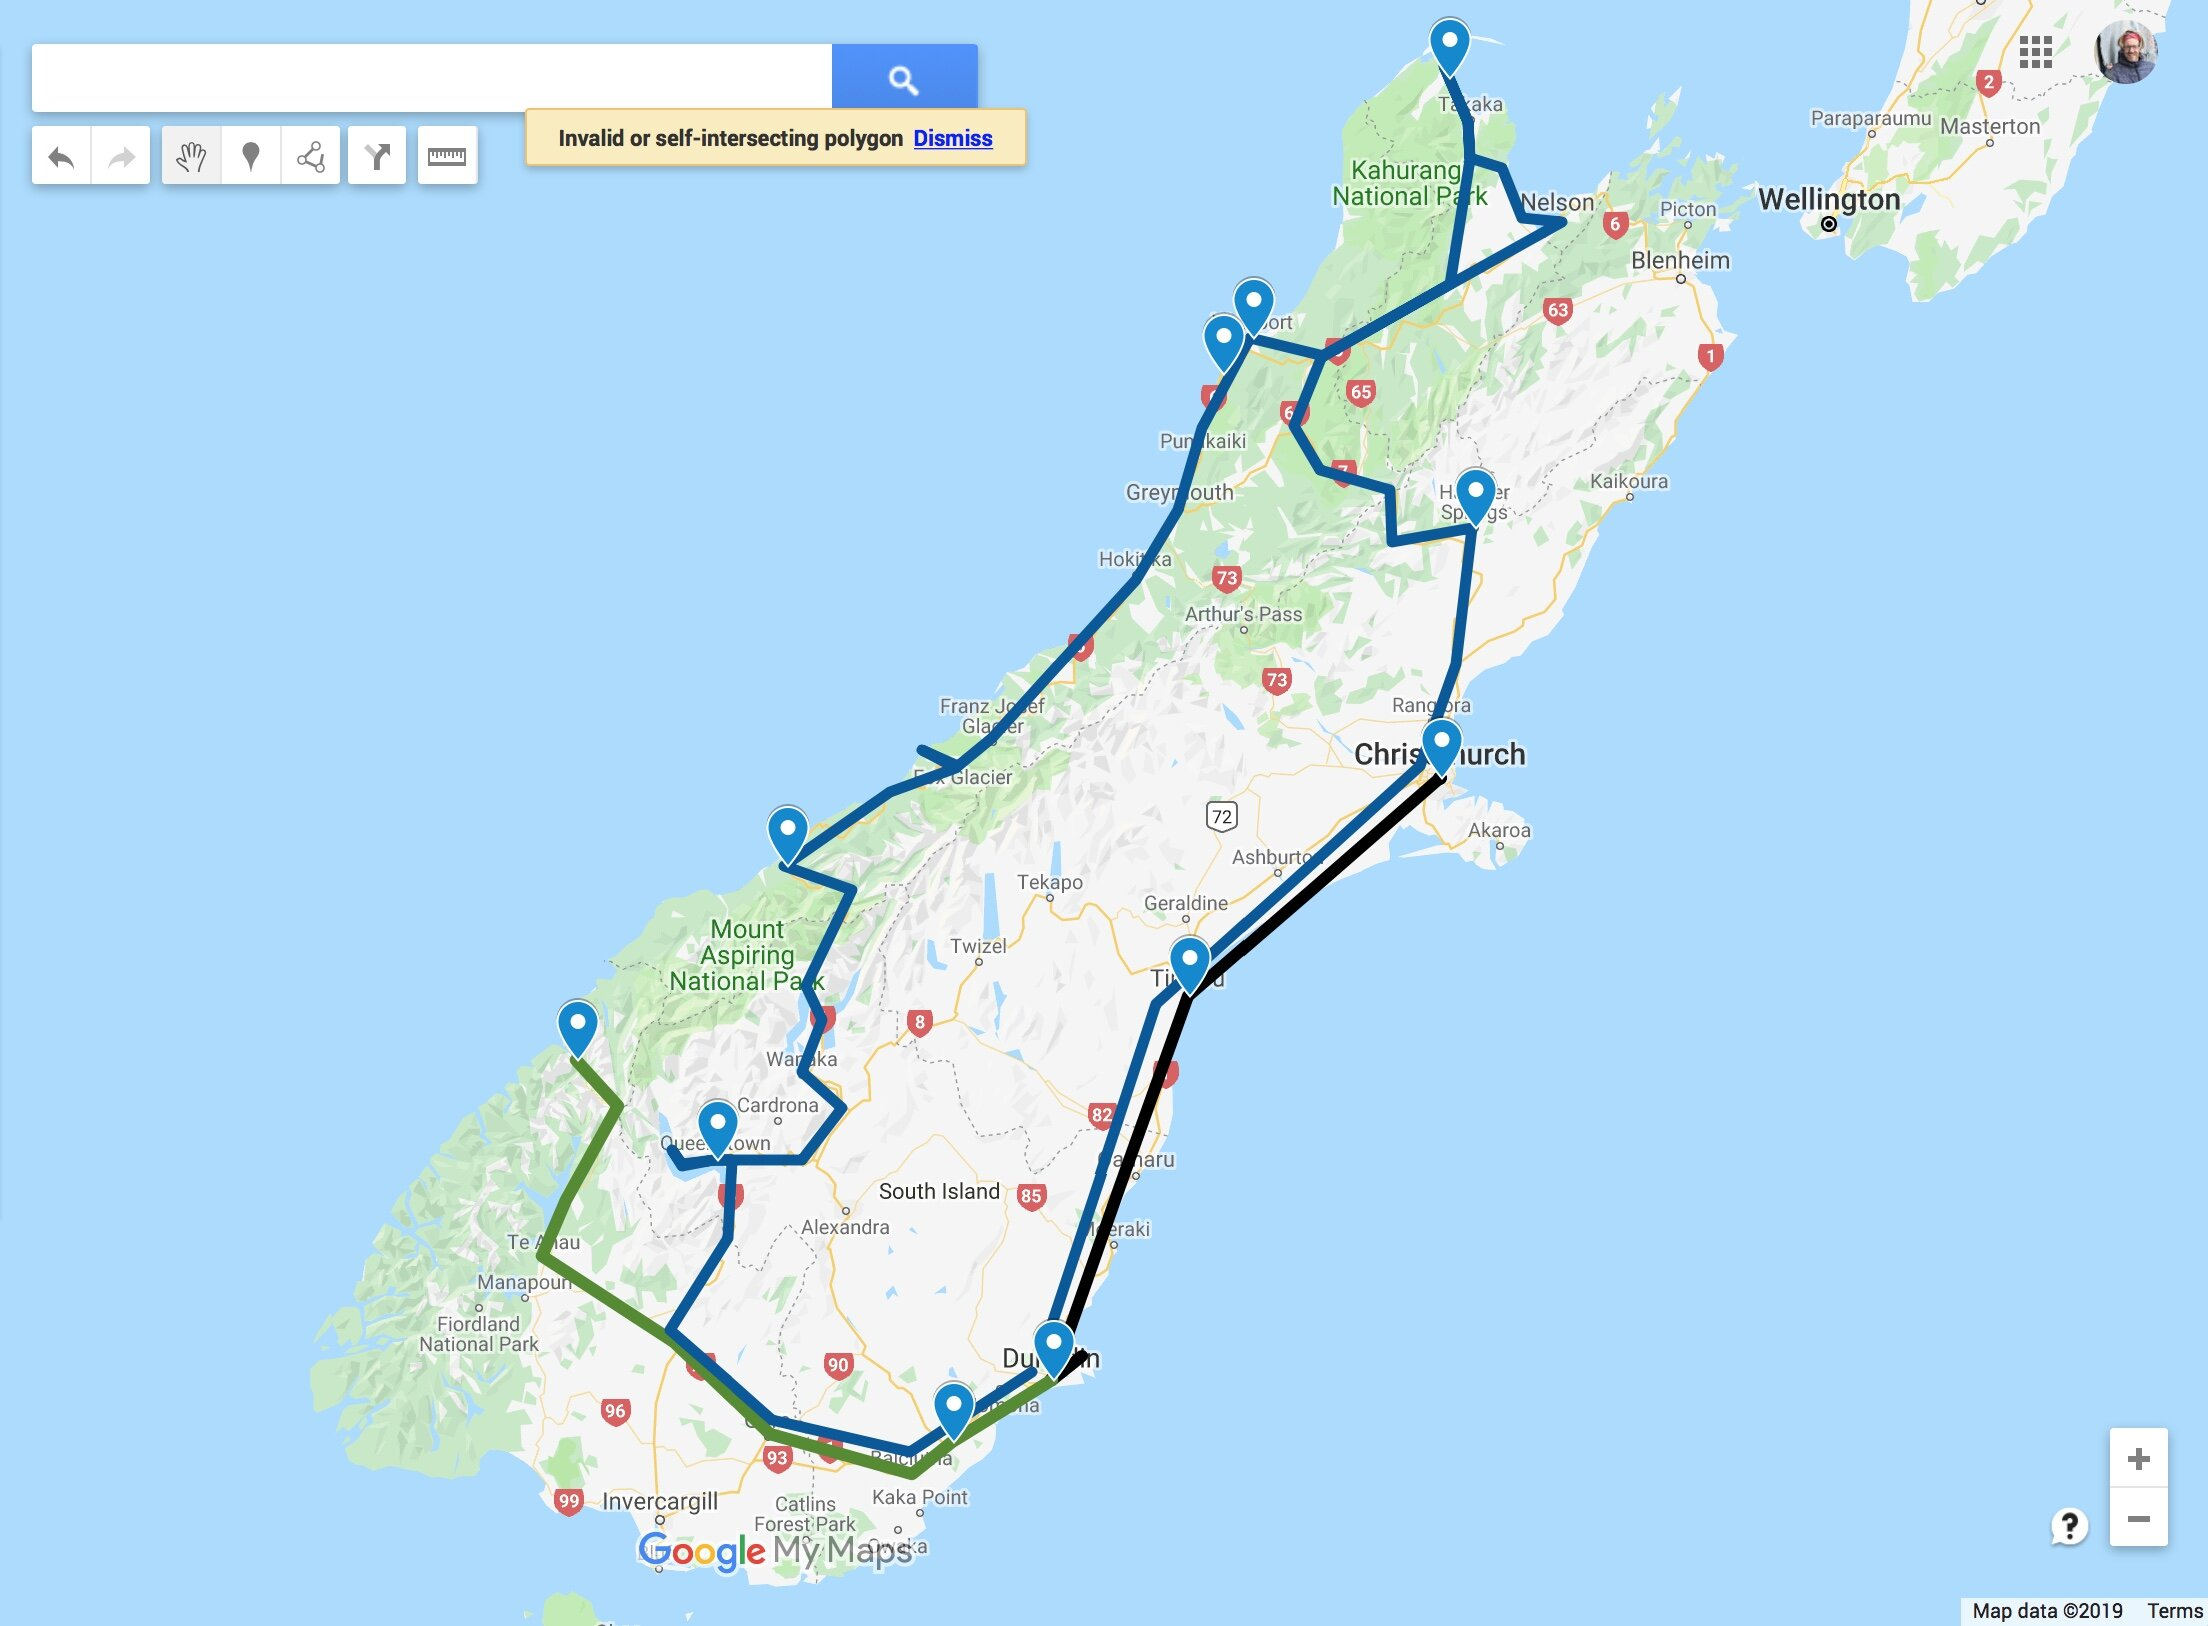 Our route around the South Island of New Zealand.